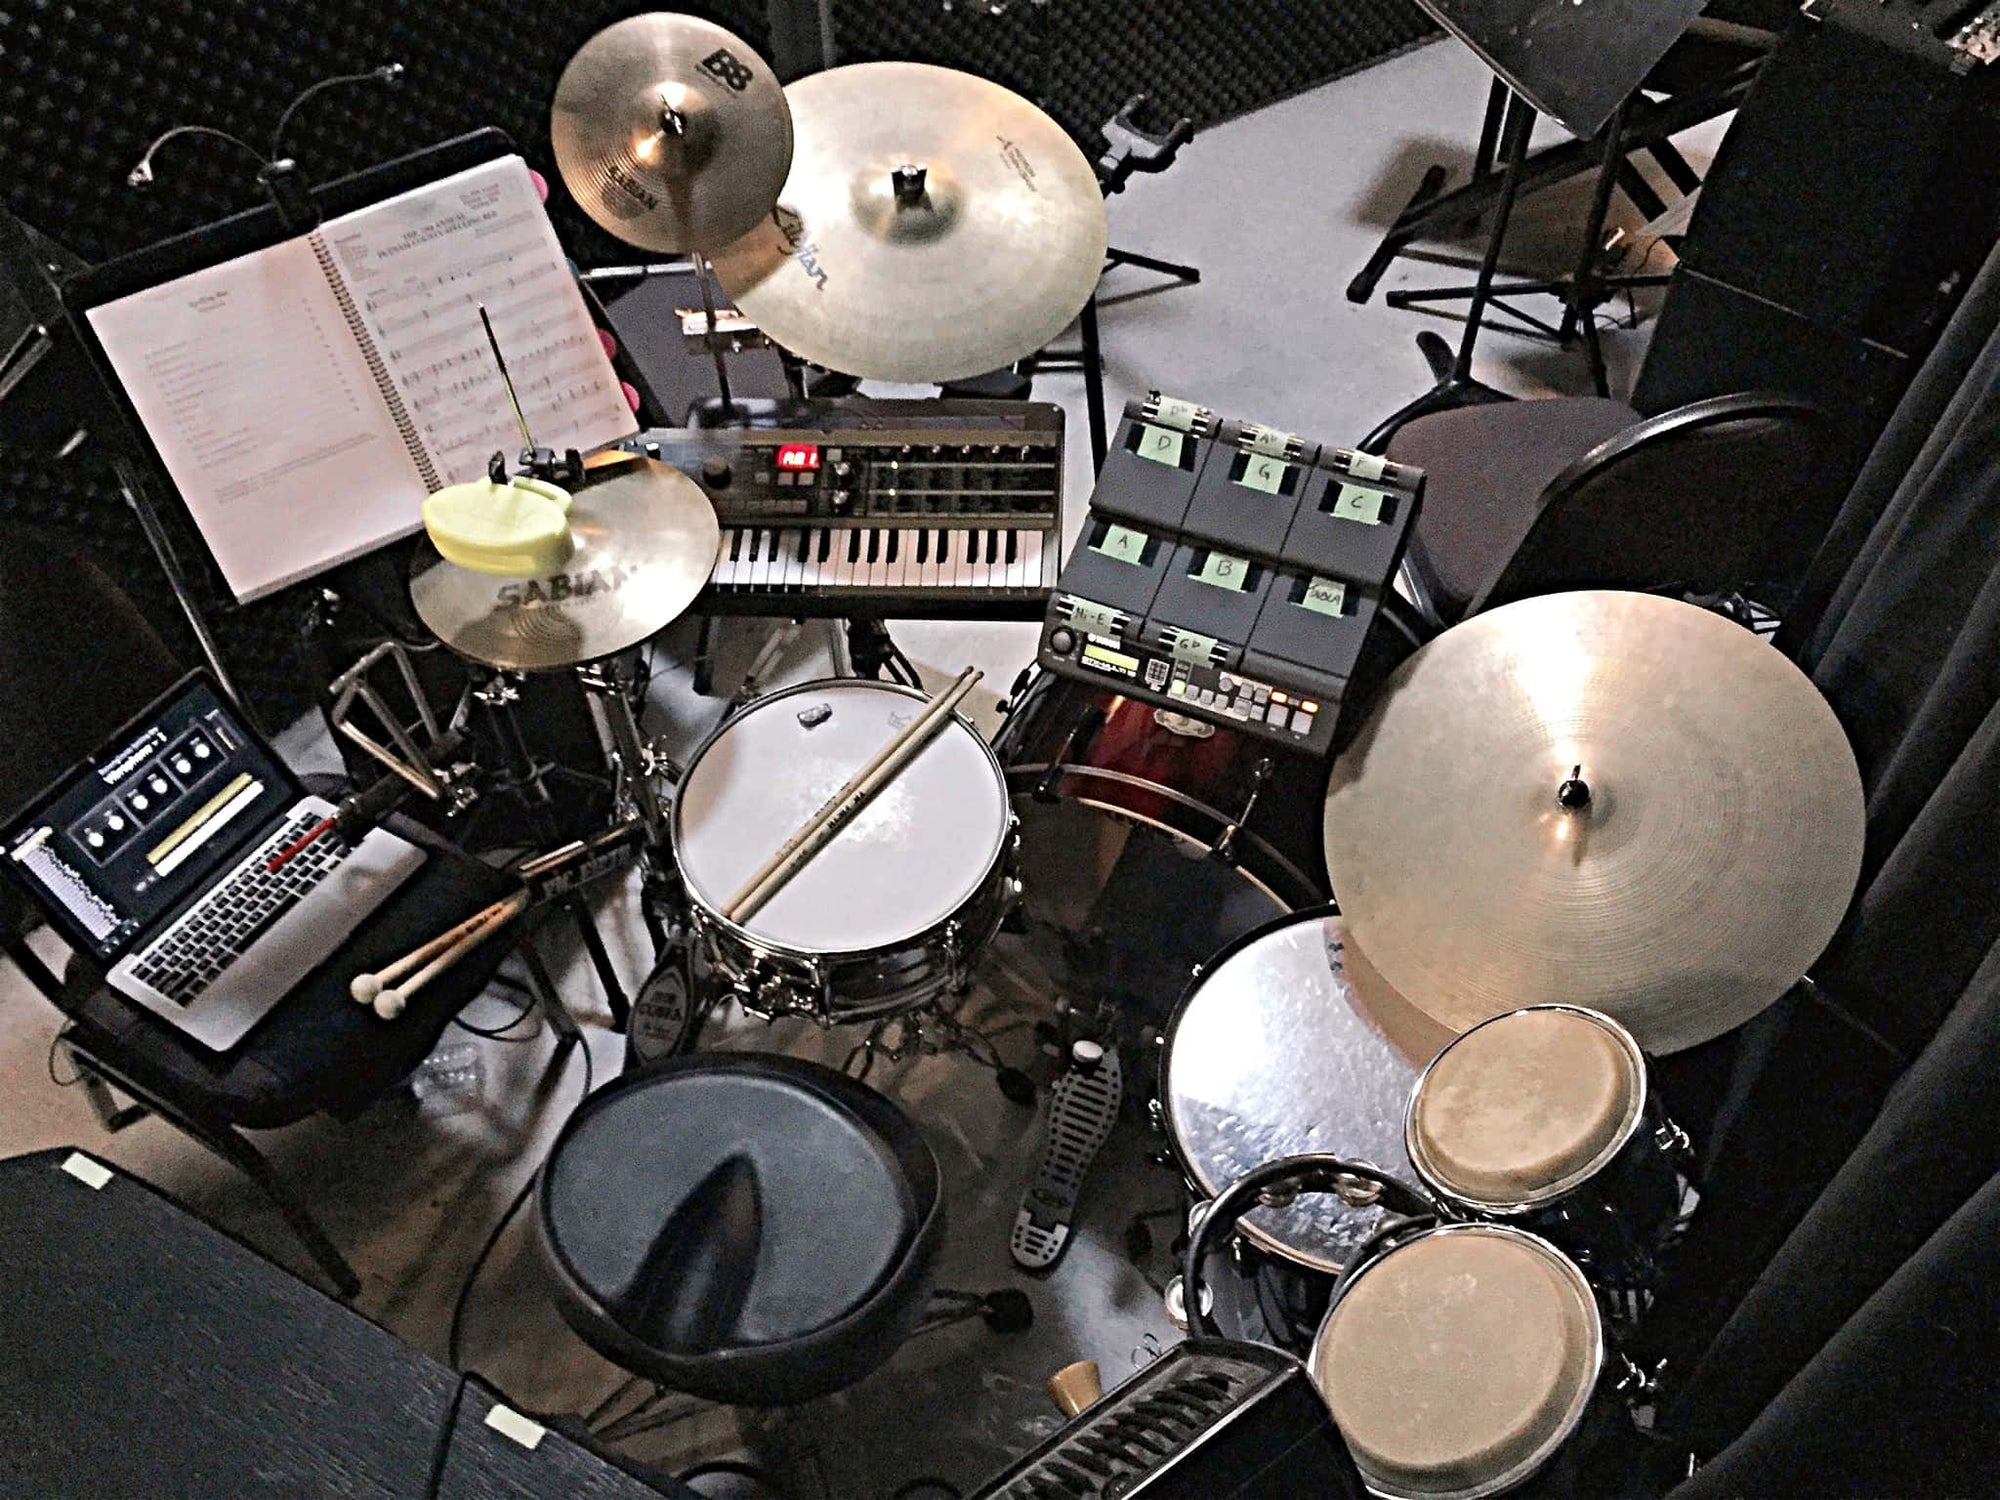 Rob Holinaty's setup for The 25th Annual Putnam County Spelling Bee at the Drury Lane Theatre in Burlington, Ontario, Canada.